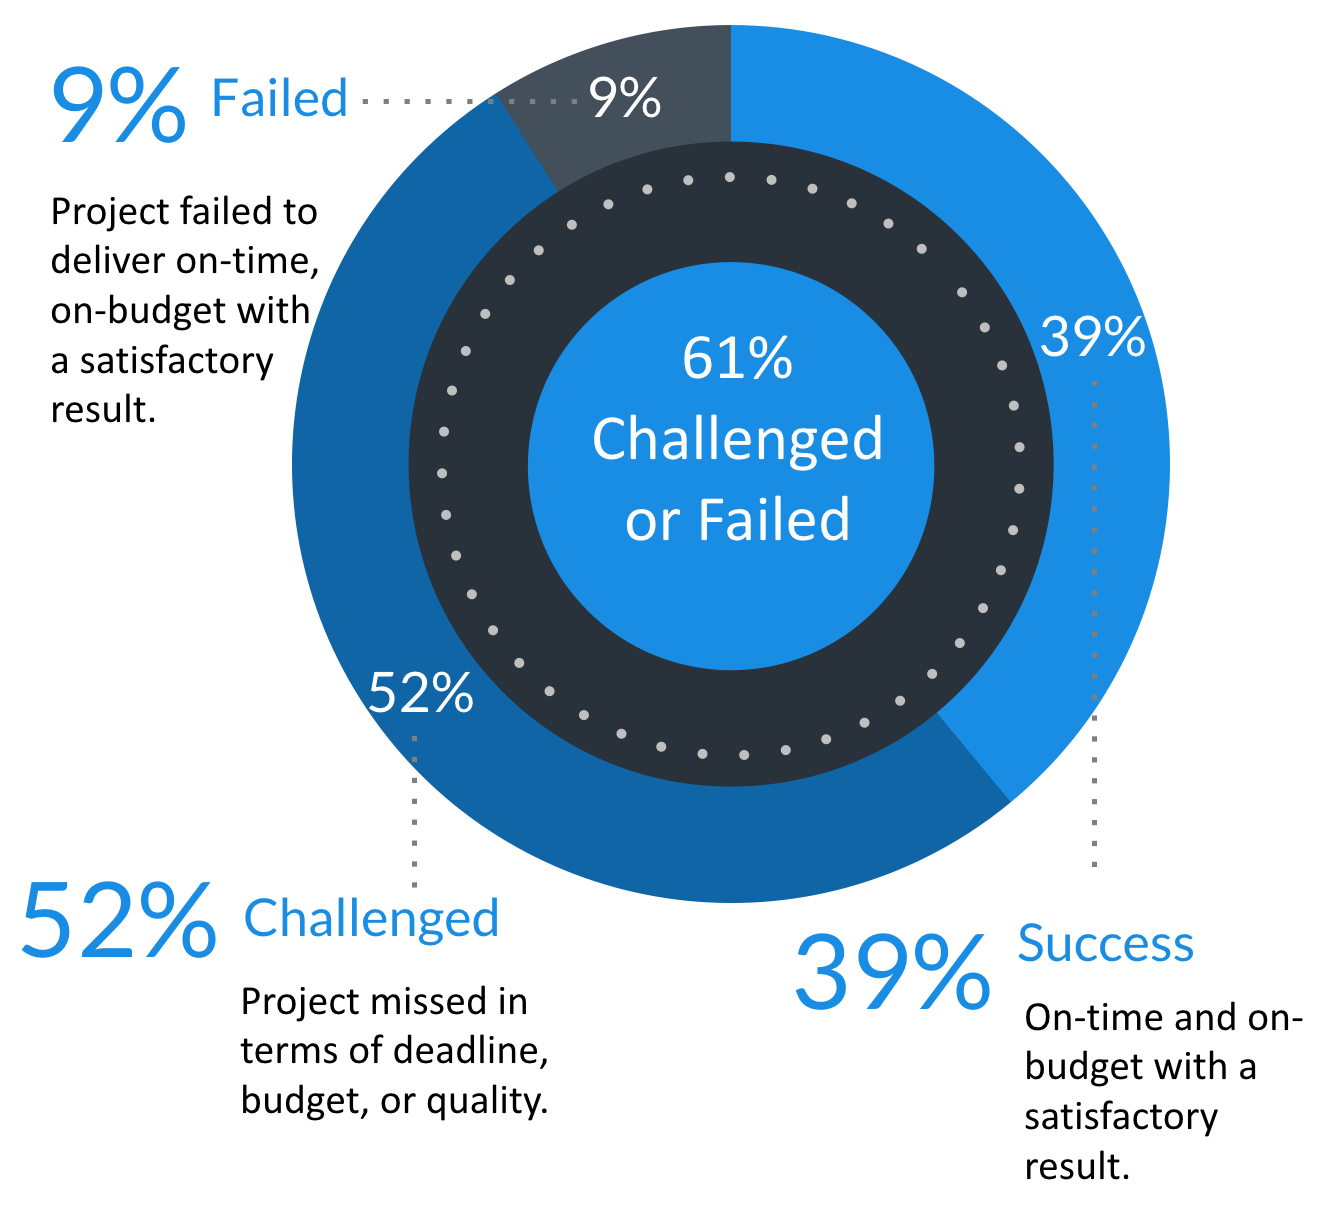 Agile Crisis - Chart from 2015 Standish CHAOS Report showing 61% of agile projects challenged or failed.